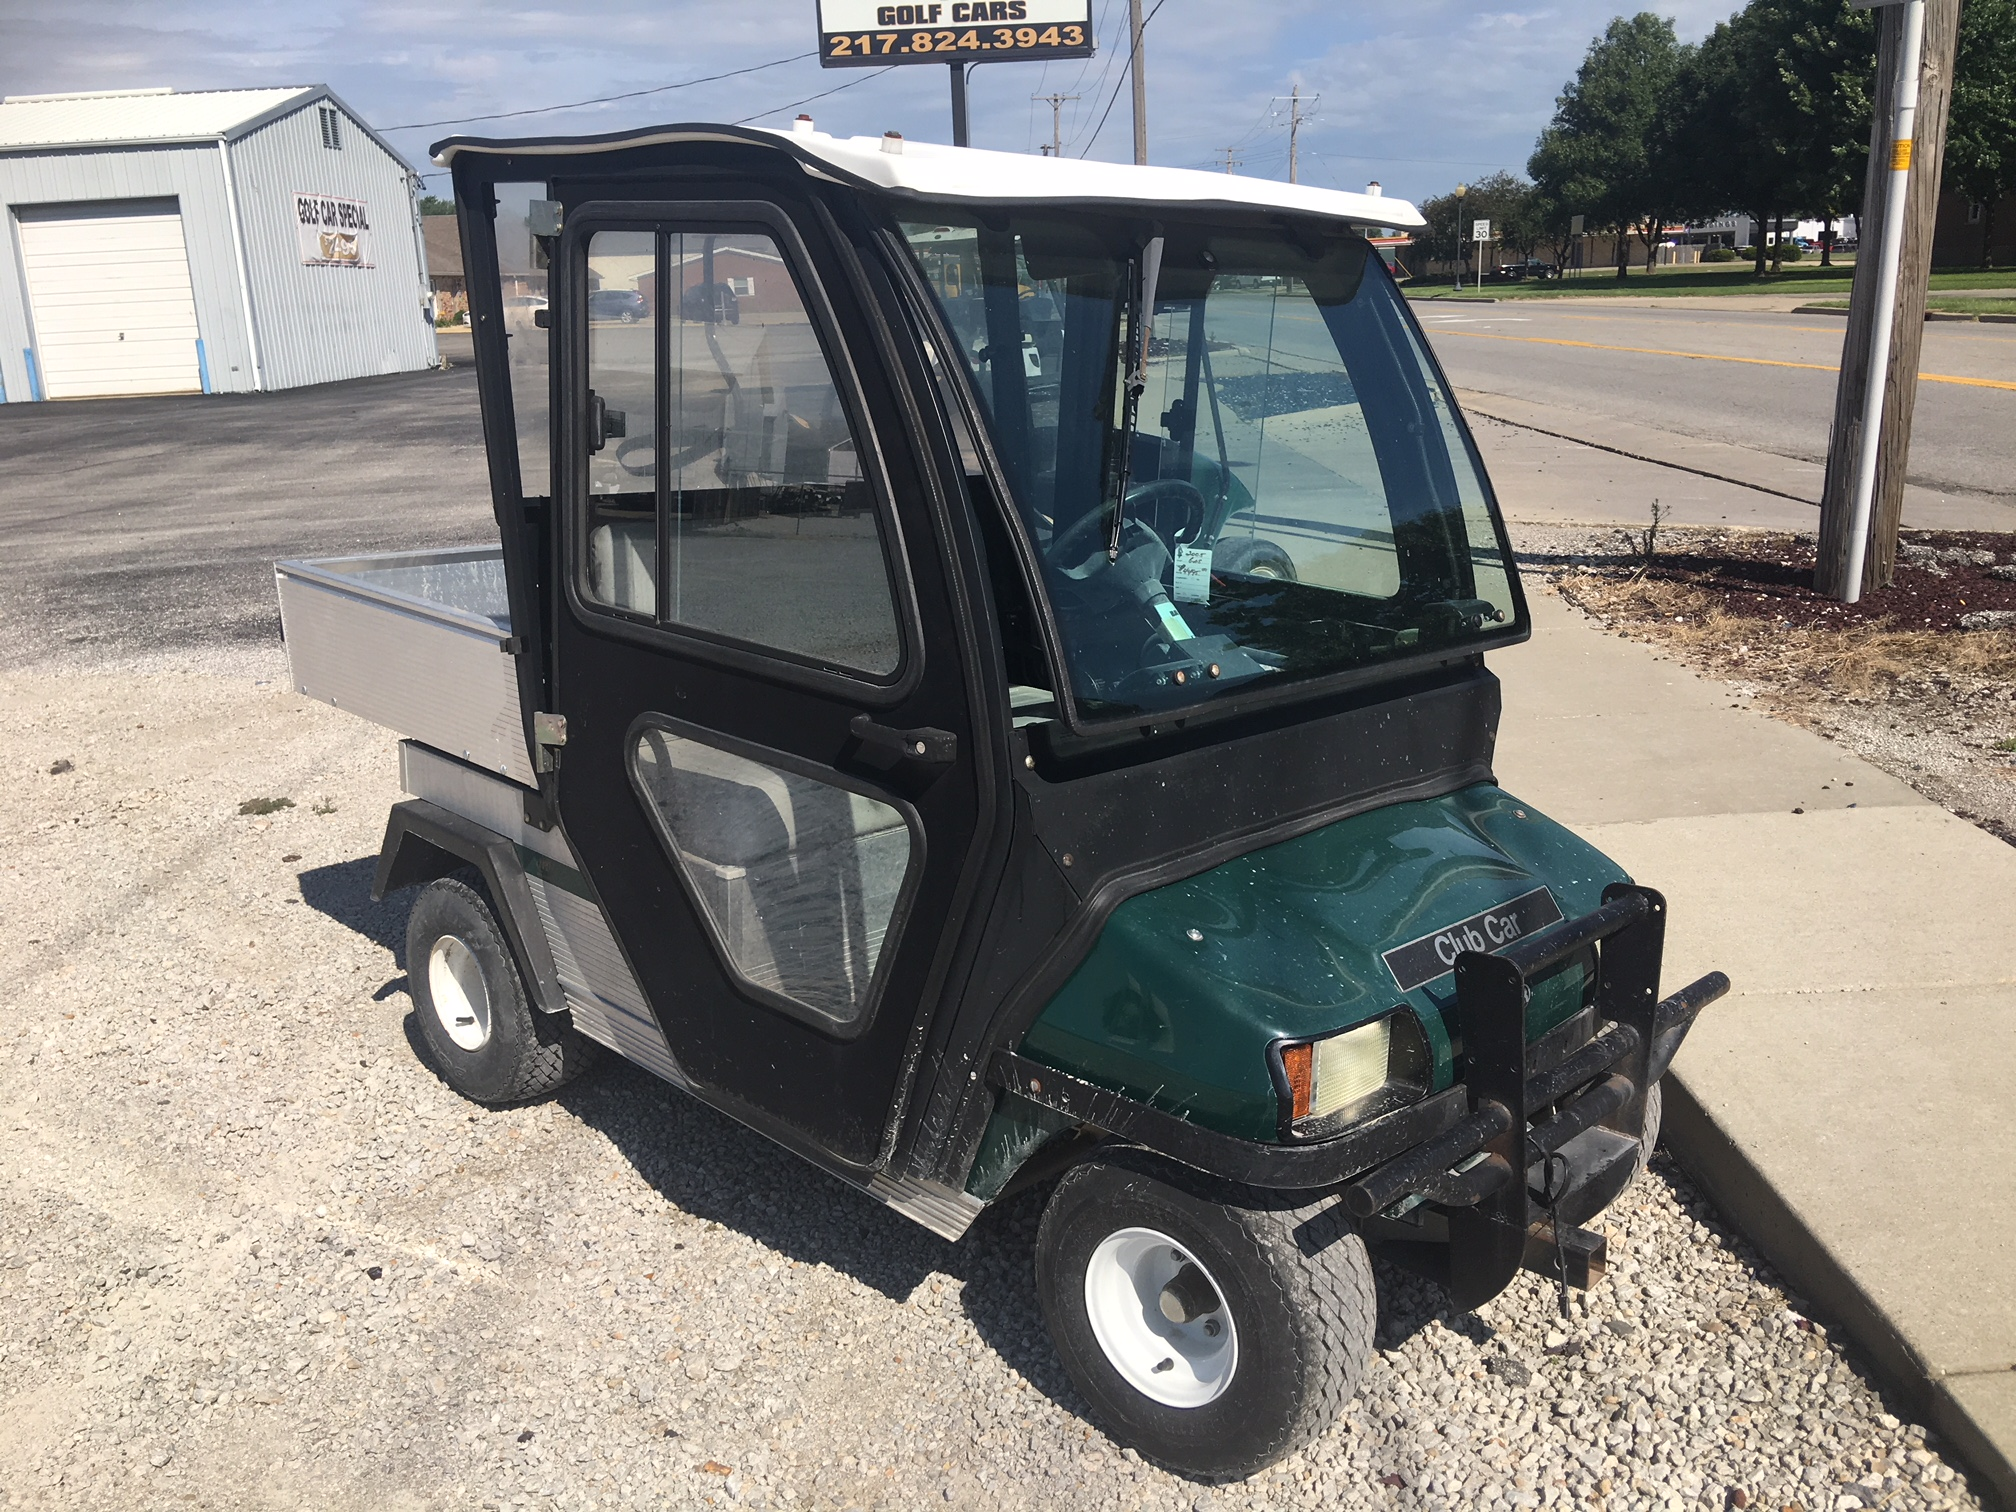 2005 Hunter Green Club Car Carryall Golf Car $TBD